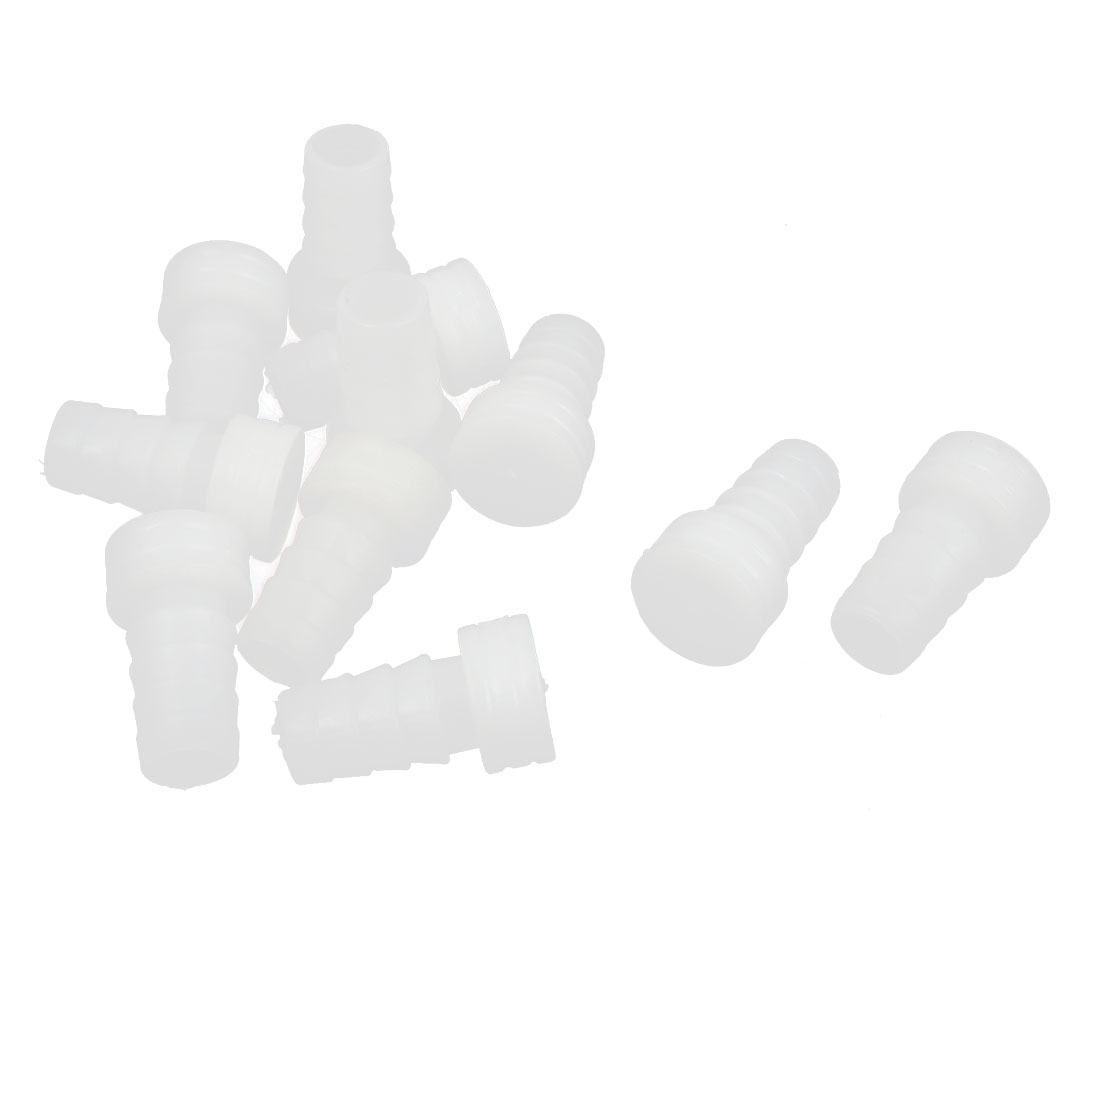 10 Pcs Plastic Pipe End Blanking Caps Bung Tube Tubing Insert Plugs White